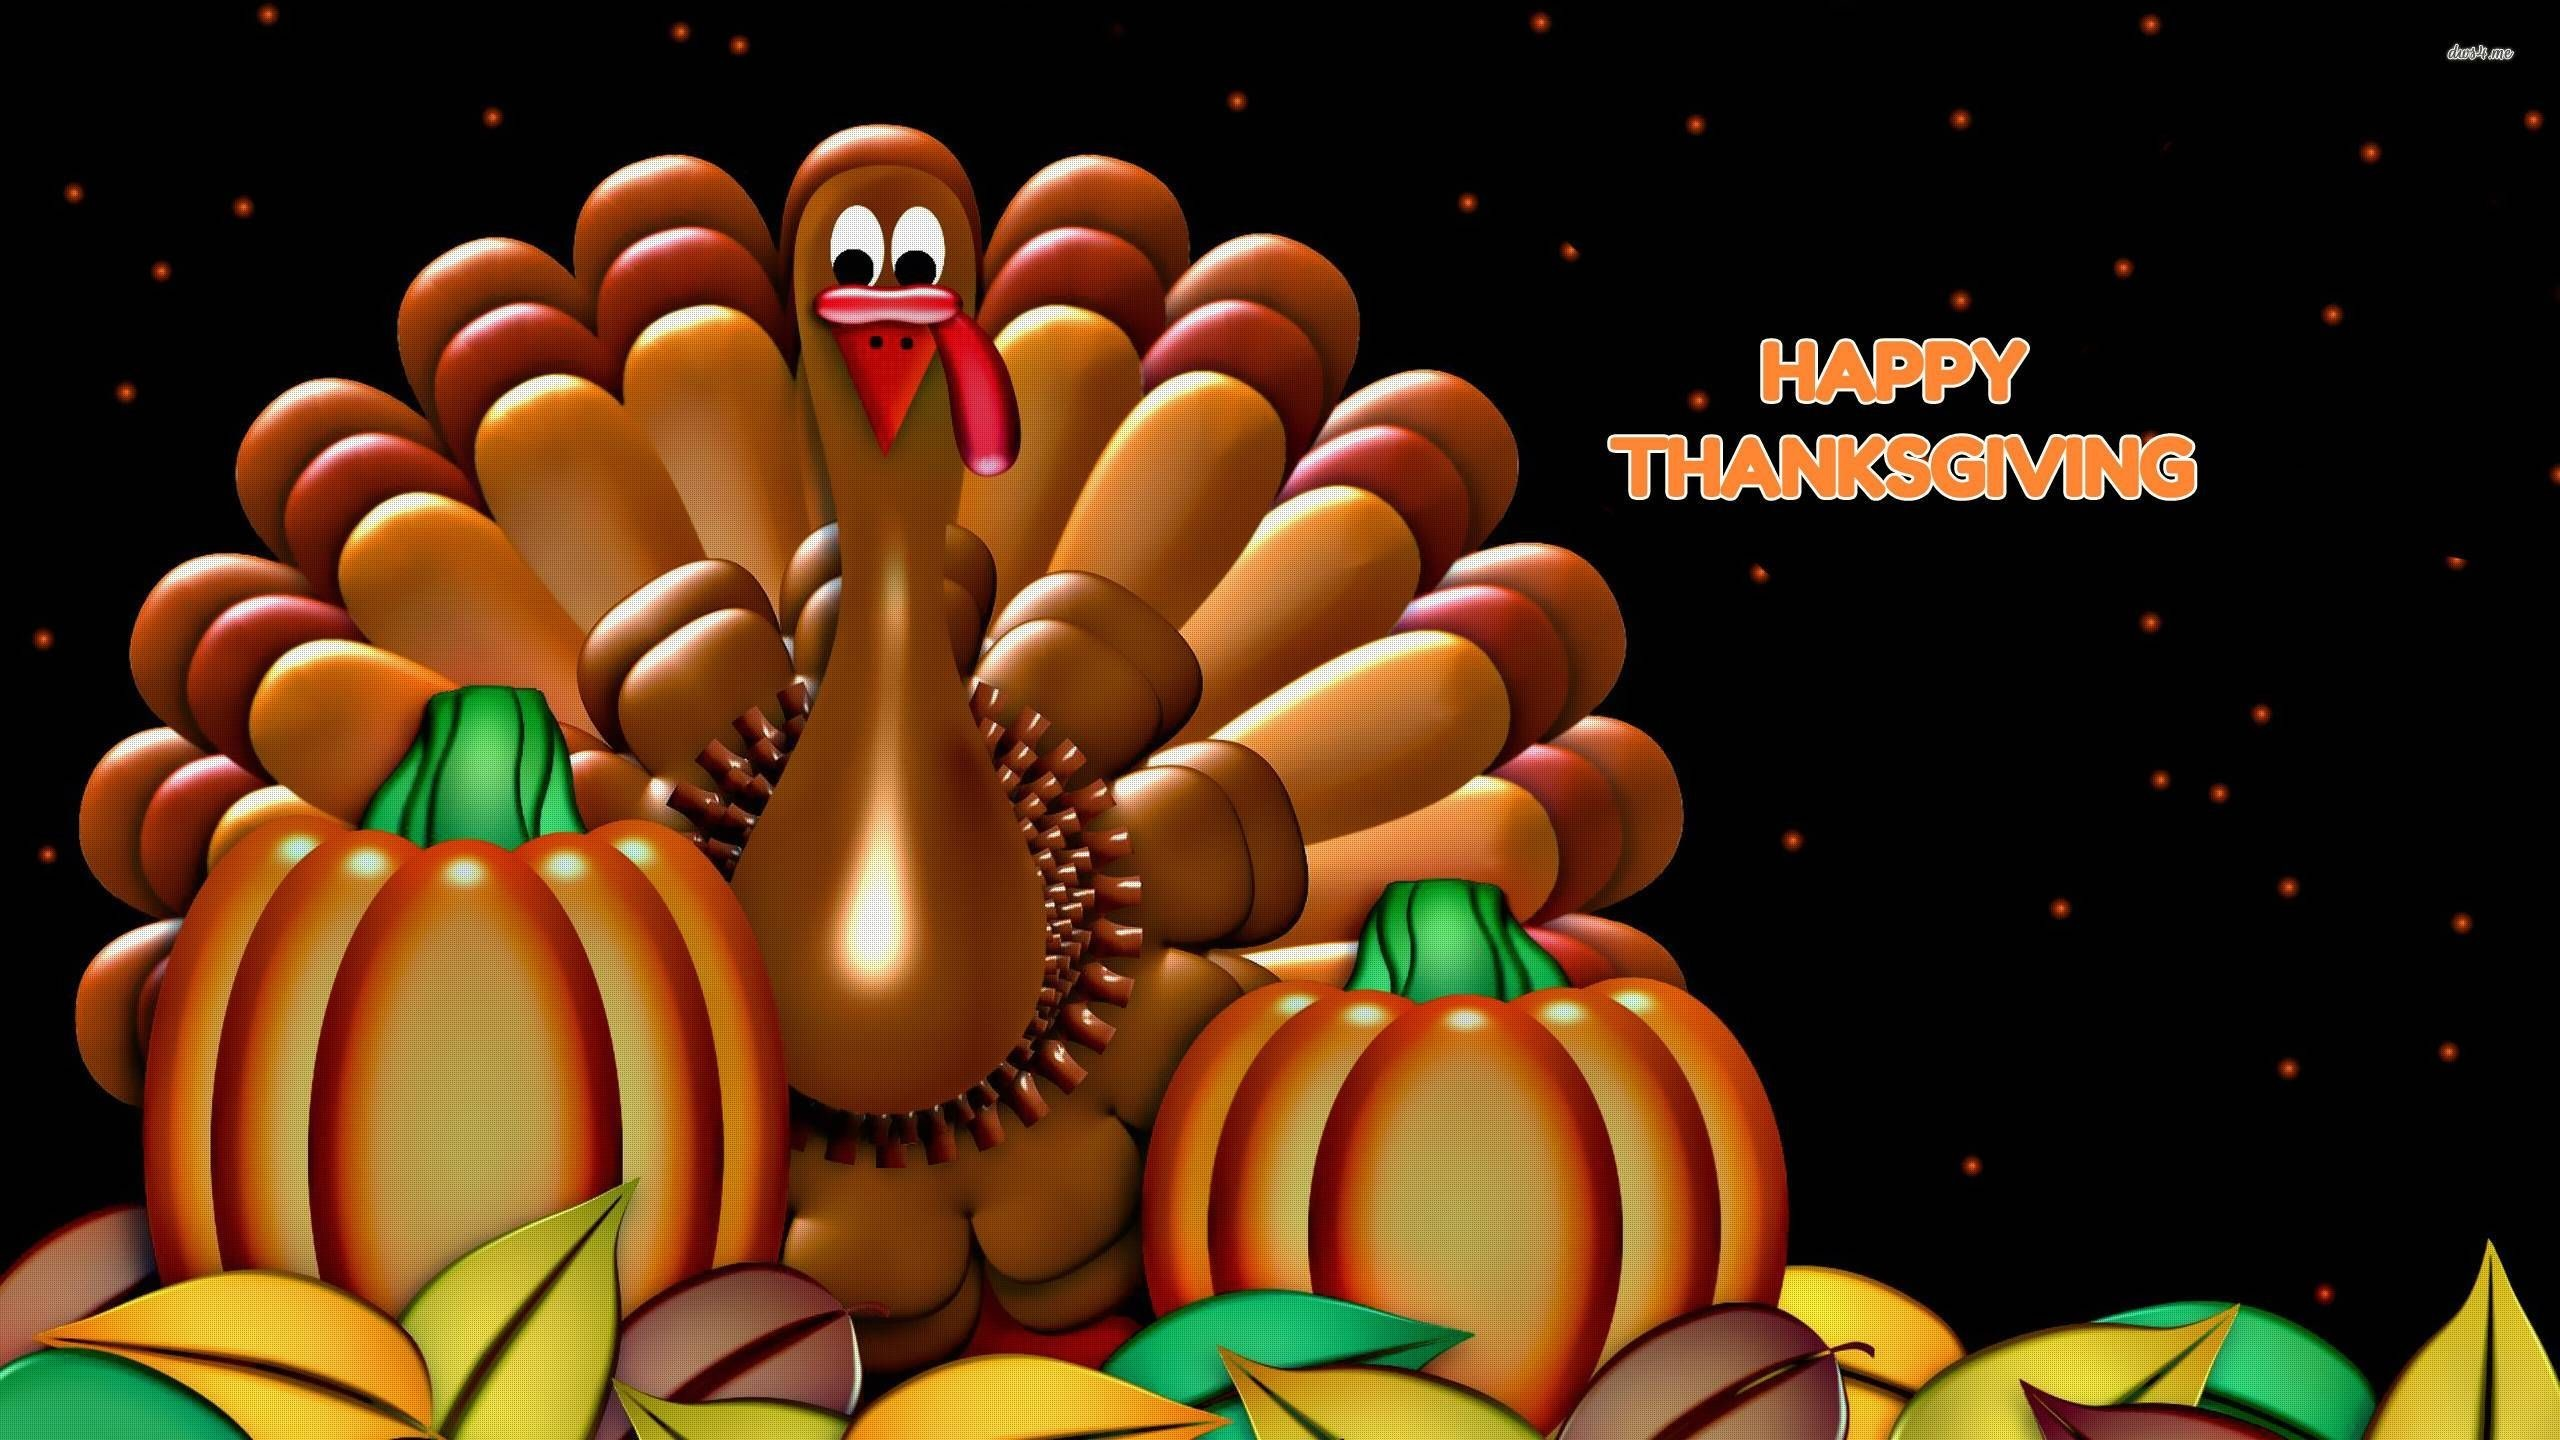 Disney Thanksgiving Wallpaper for Computer (74+ images)